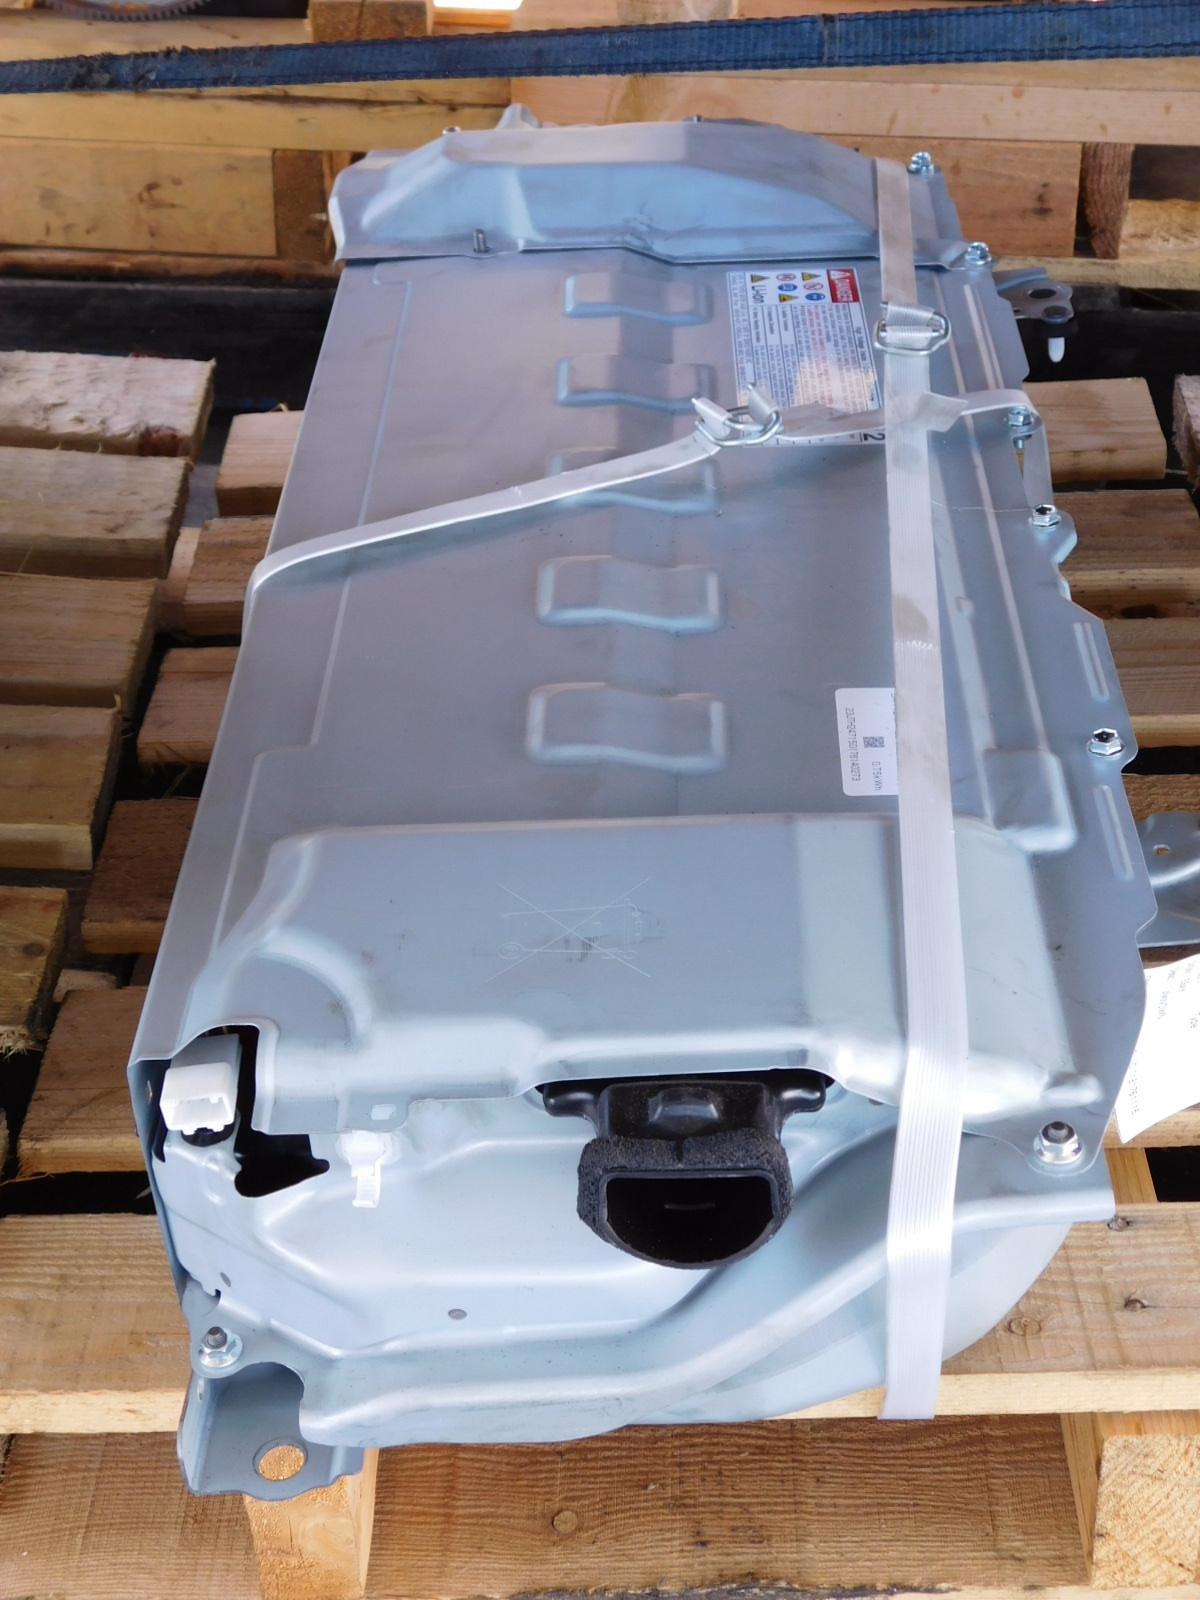 Details About 16 2016 17 2017 Toyota Prius Lithium Ion Hybrid Battery Pack 3k Miles Oem Lkq Image Is Loading